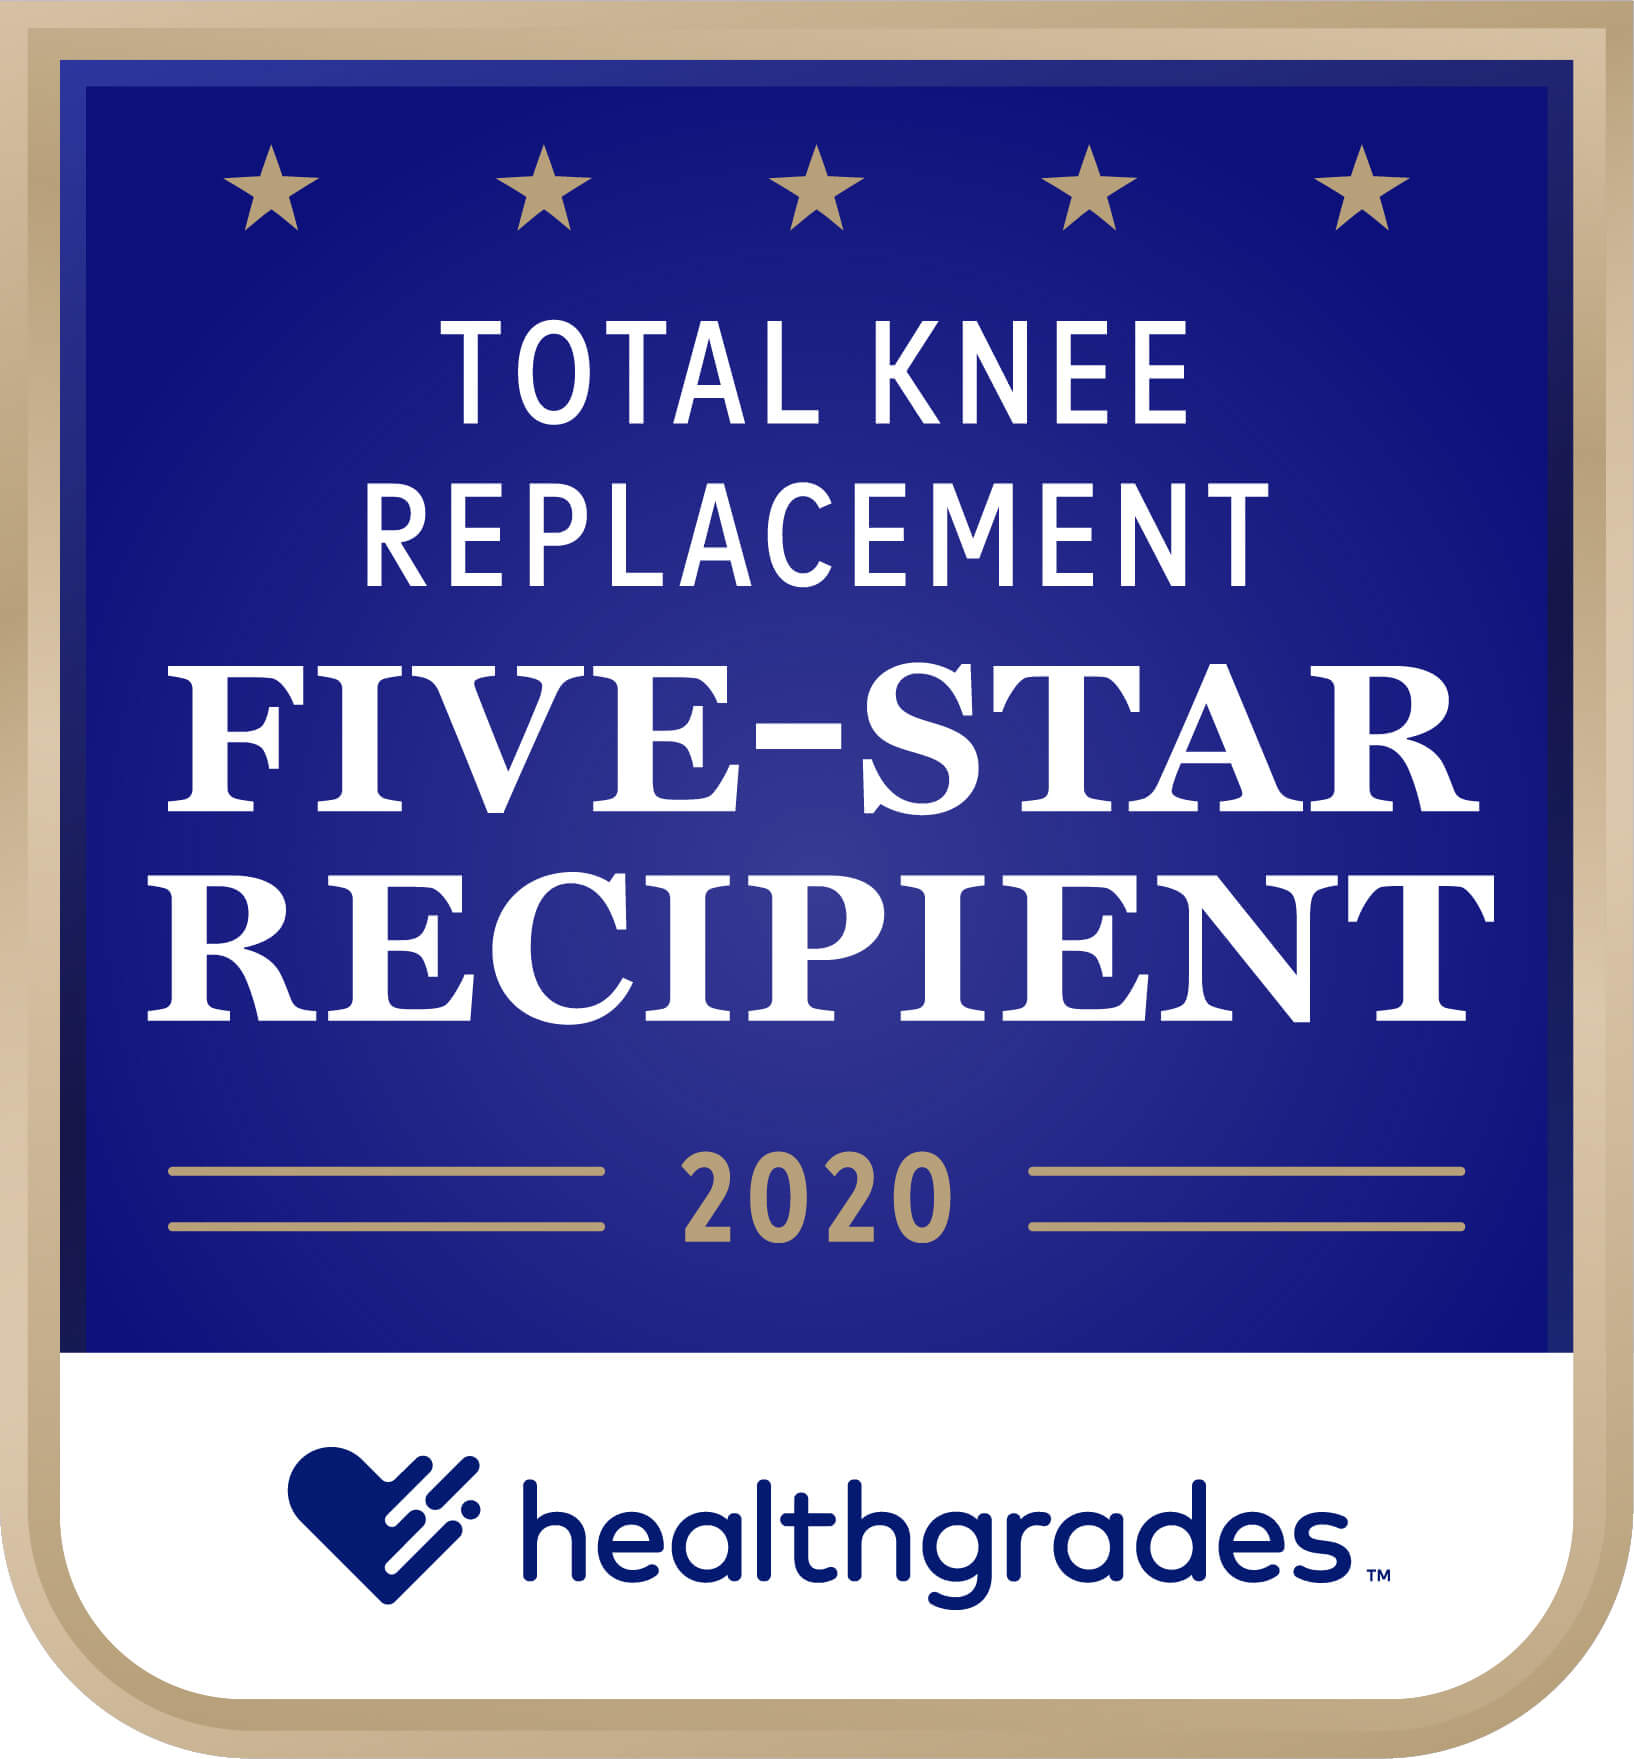 Healthgrades Five-Star Recipient for Total Knee Replacement Award 2020